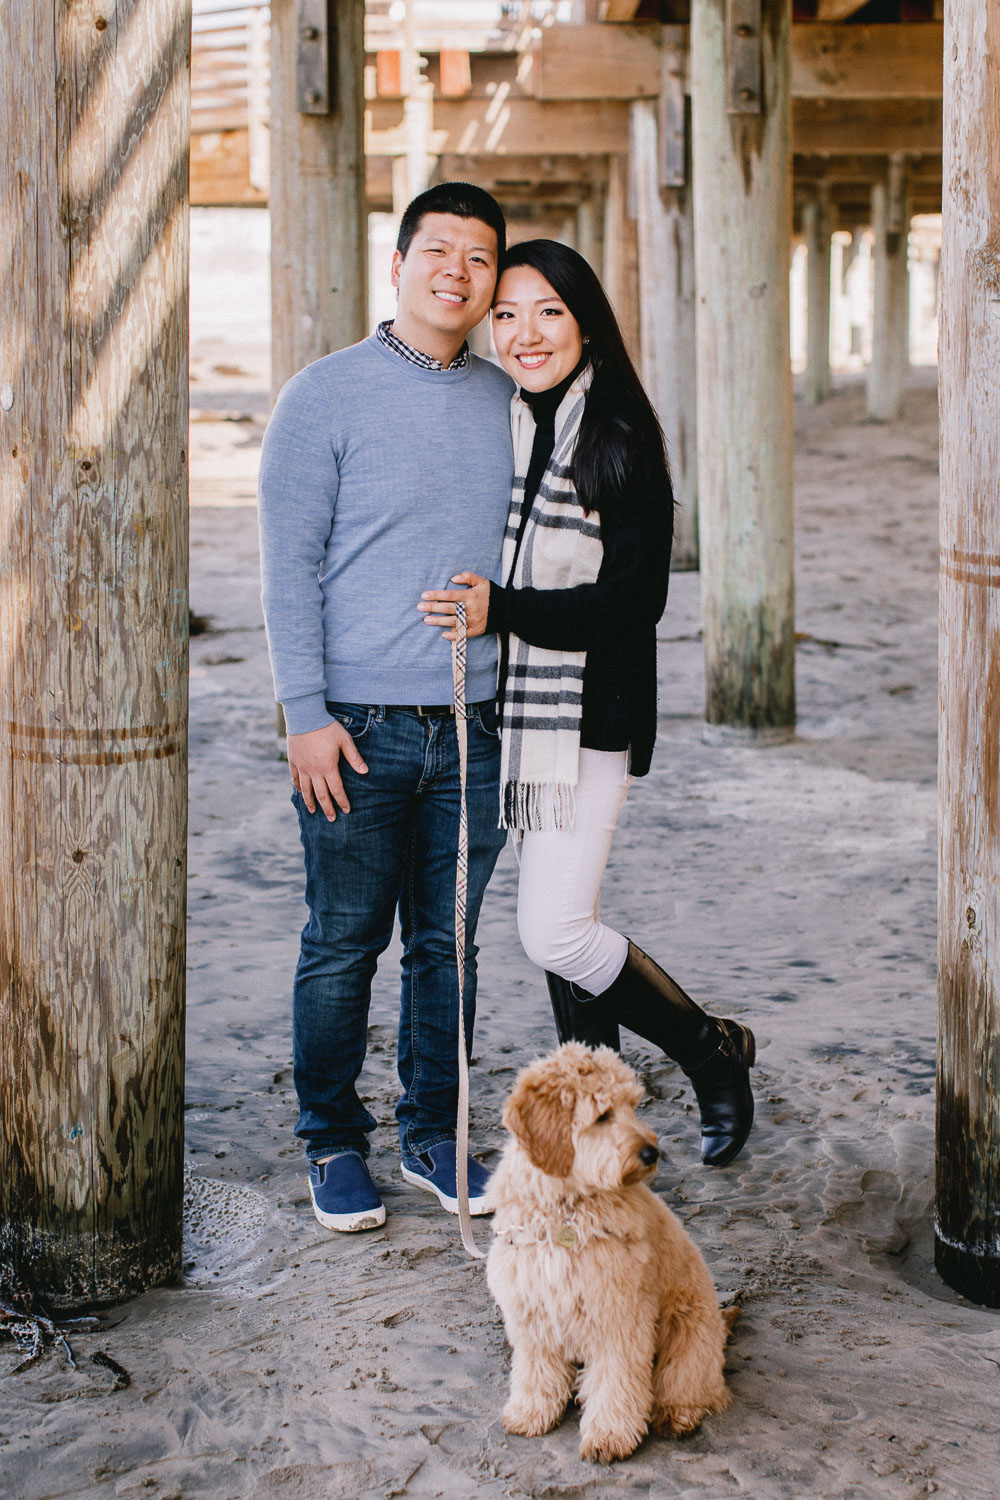 Pismo-Beach-Couples-Photography-Session-With-Puppy-109.jpg